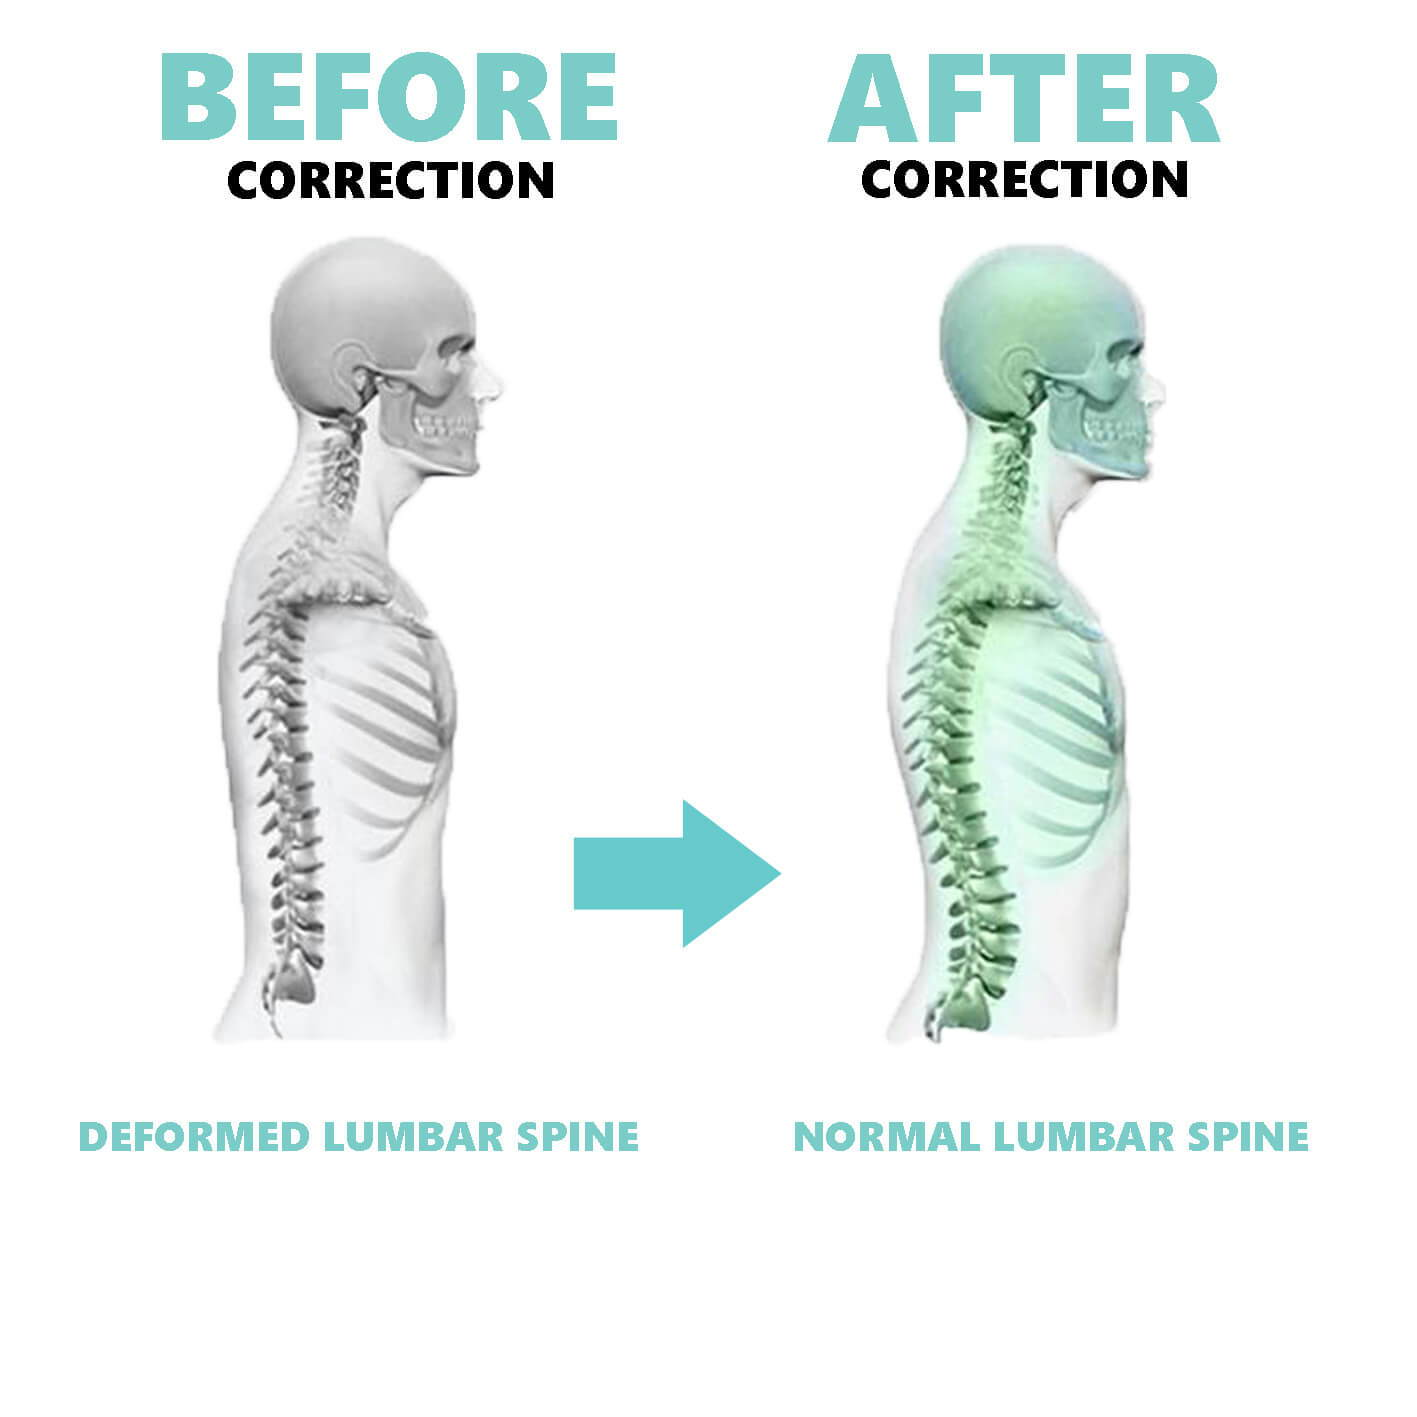 Lumbar Support Results